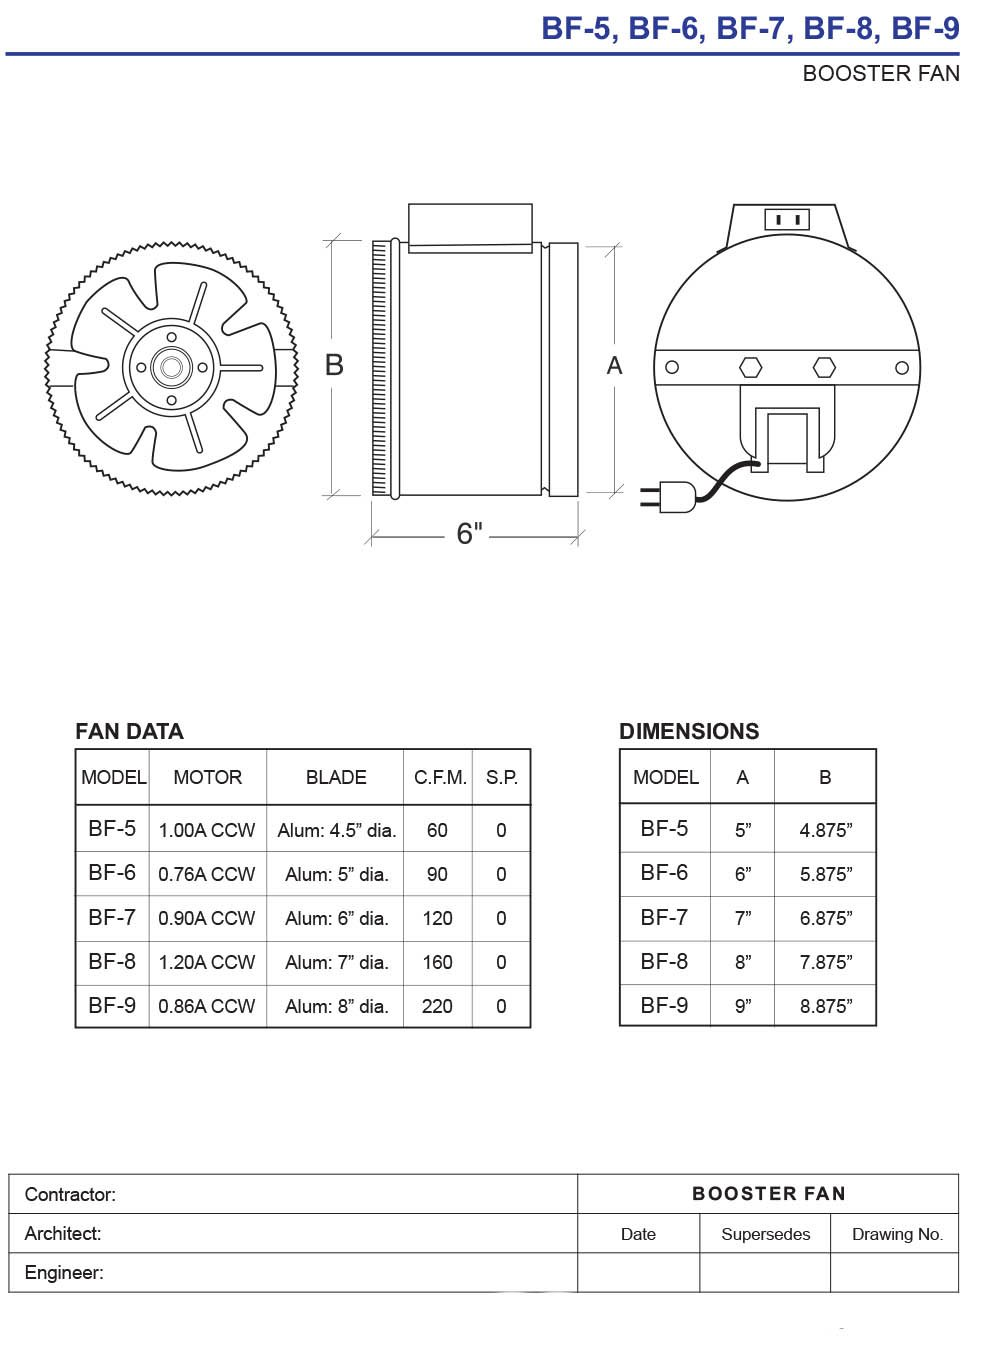 Reversomatic 120 Cfm 7 Duct Booster Fan For Ventilation Rectangular Wiring Diagram Bf Home Kitchen